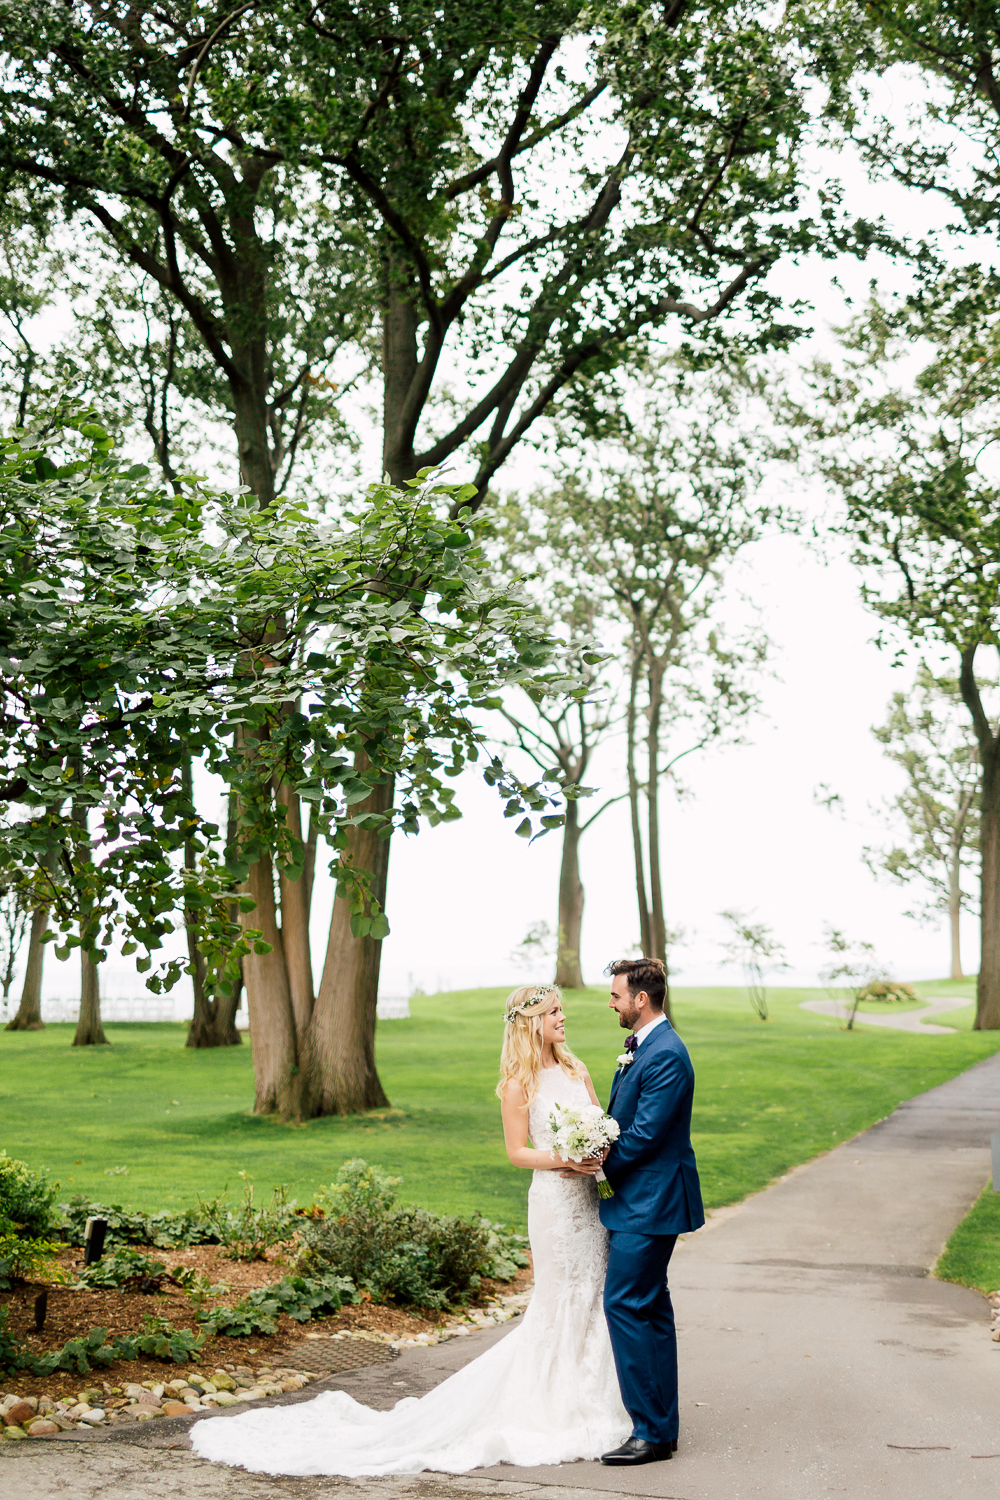 Wedding Venue Overlooking Lake Ontario